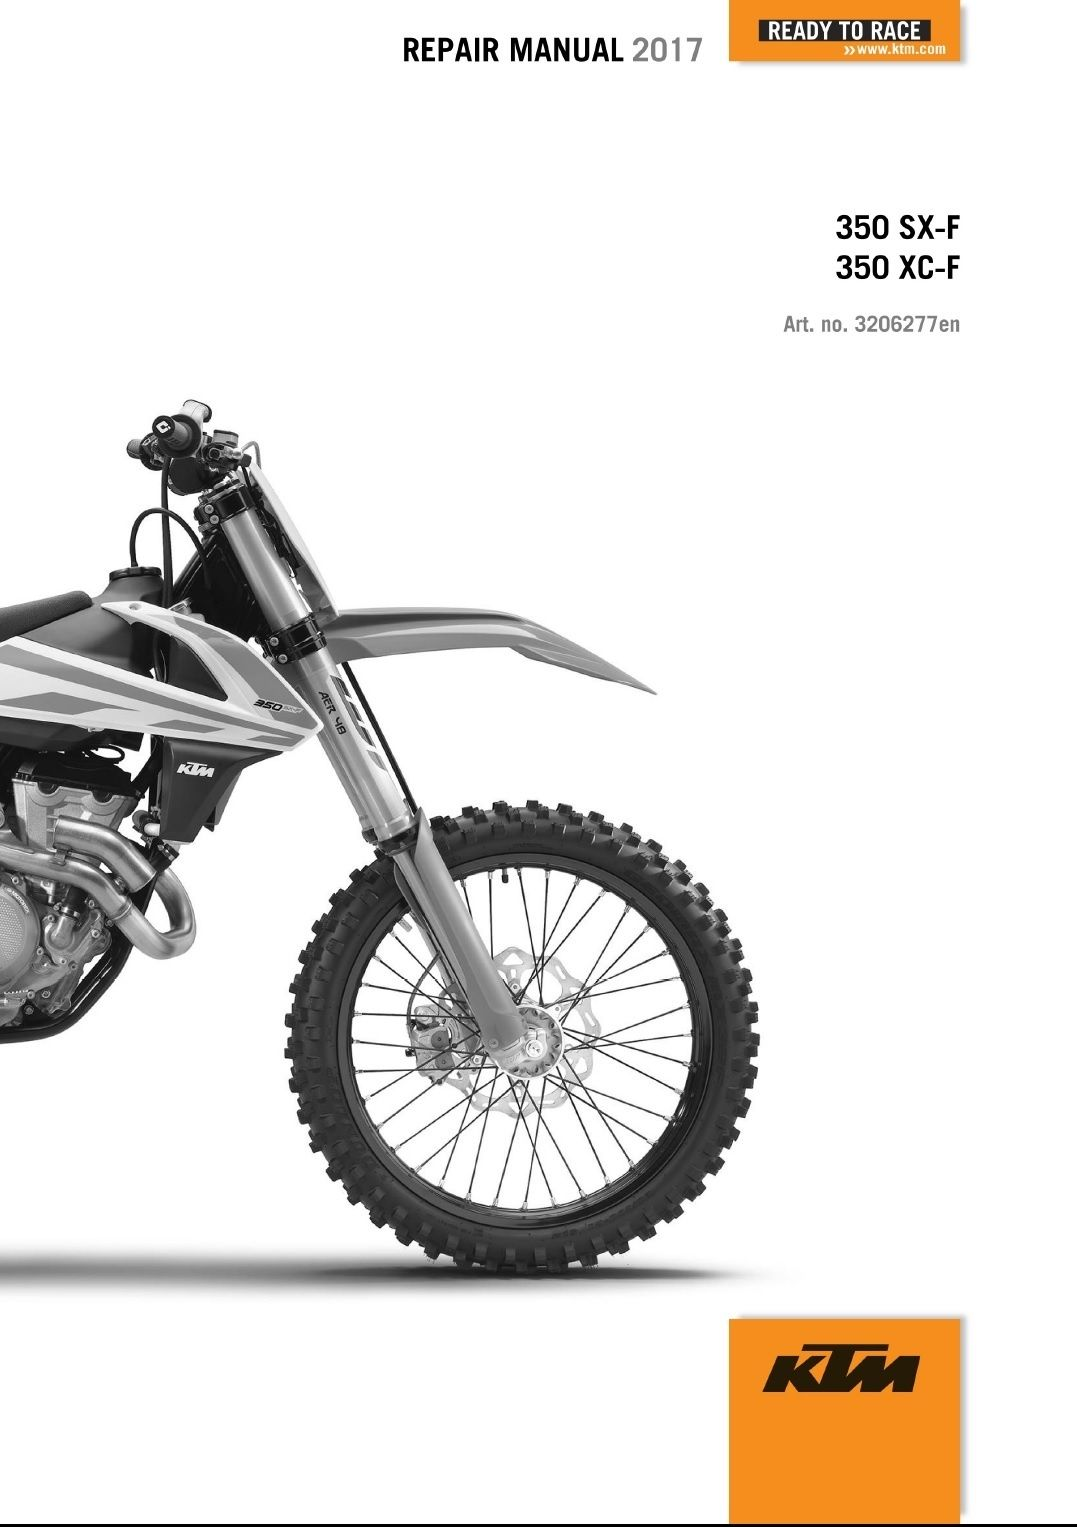 COVERS ALL MODELS LISTED ABOVE & ALL REPAIRS A-Z This is a GENUINE KTM  COMPLETE SERVICE REPIAR MANUAL for 2017 KTM 350 SX-F ...